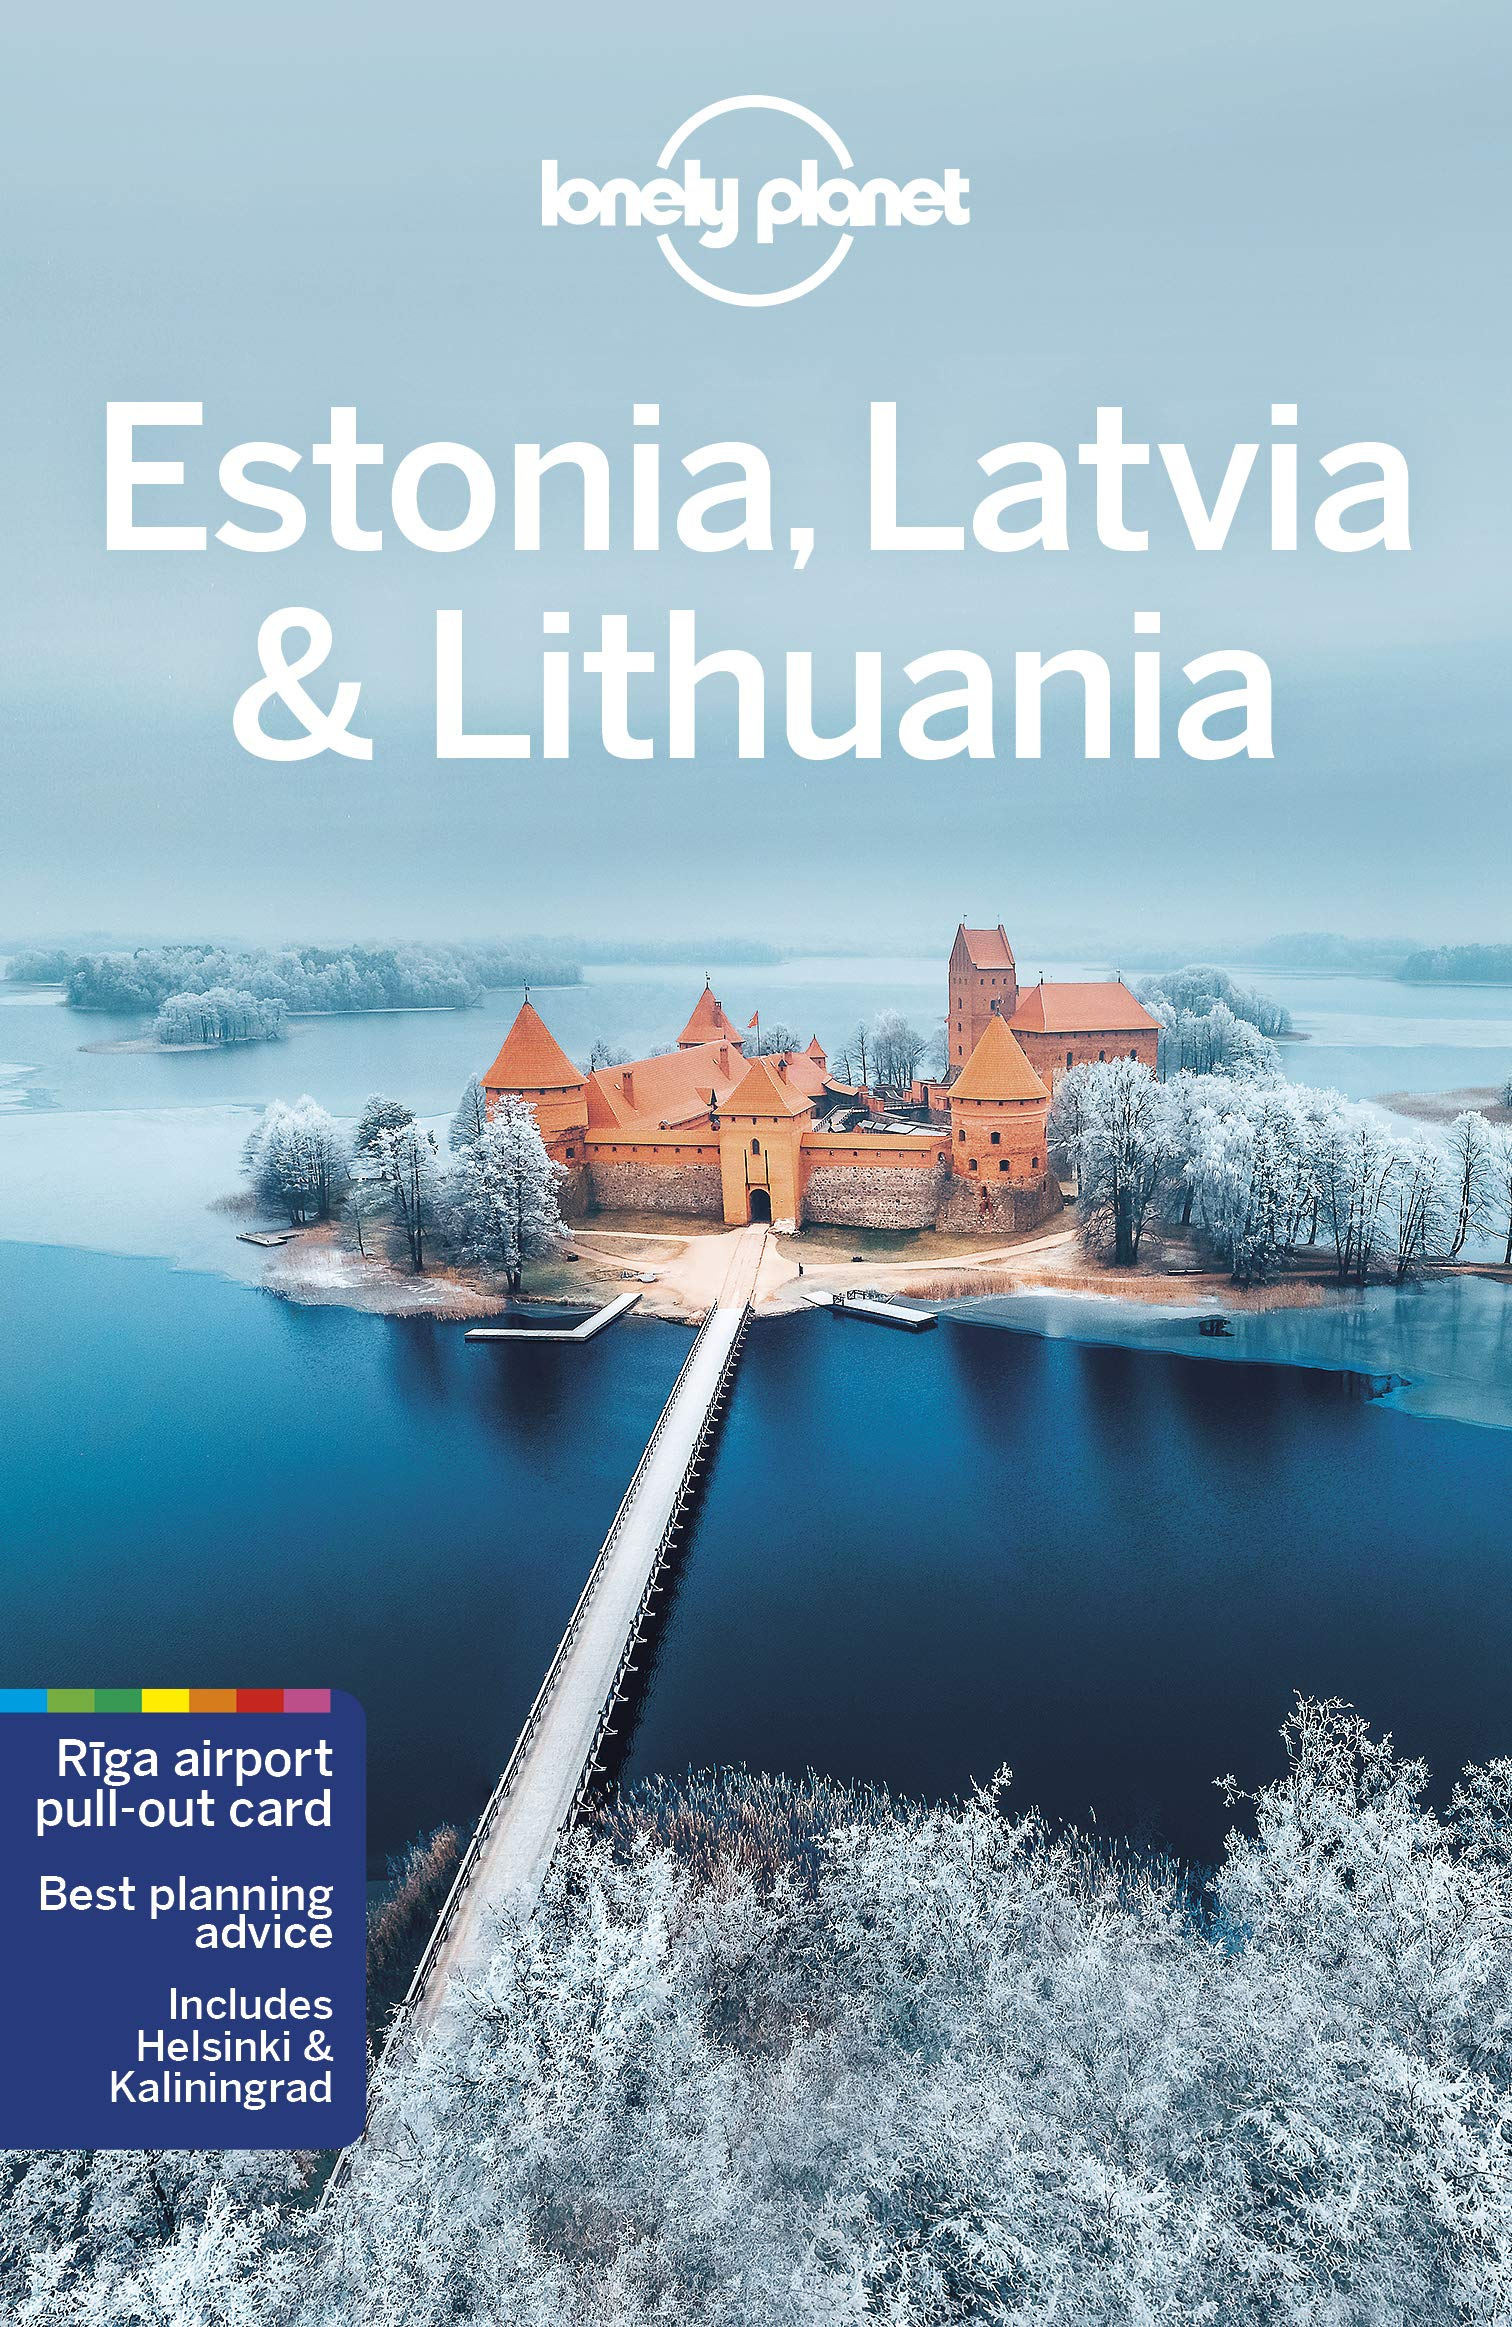 Lonely Planet Estonia, Latvia + Lithuania 9781786575982  Lonely Planet Travel Guides  Reisgidsen Baltische Staten en Kaliningrad